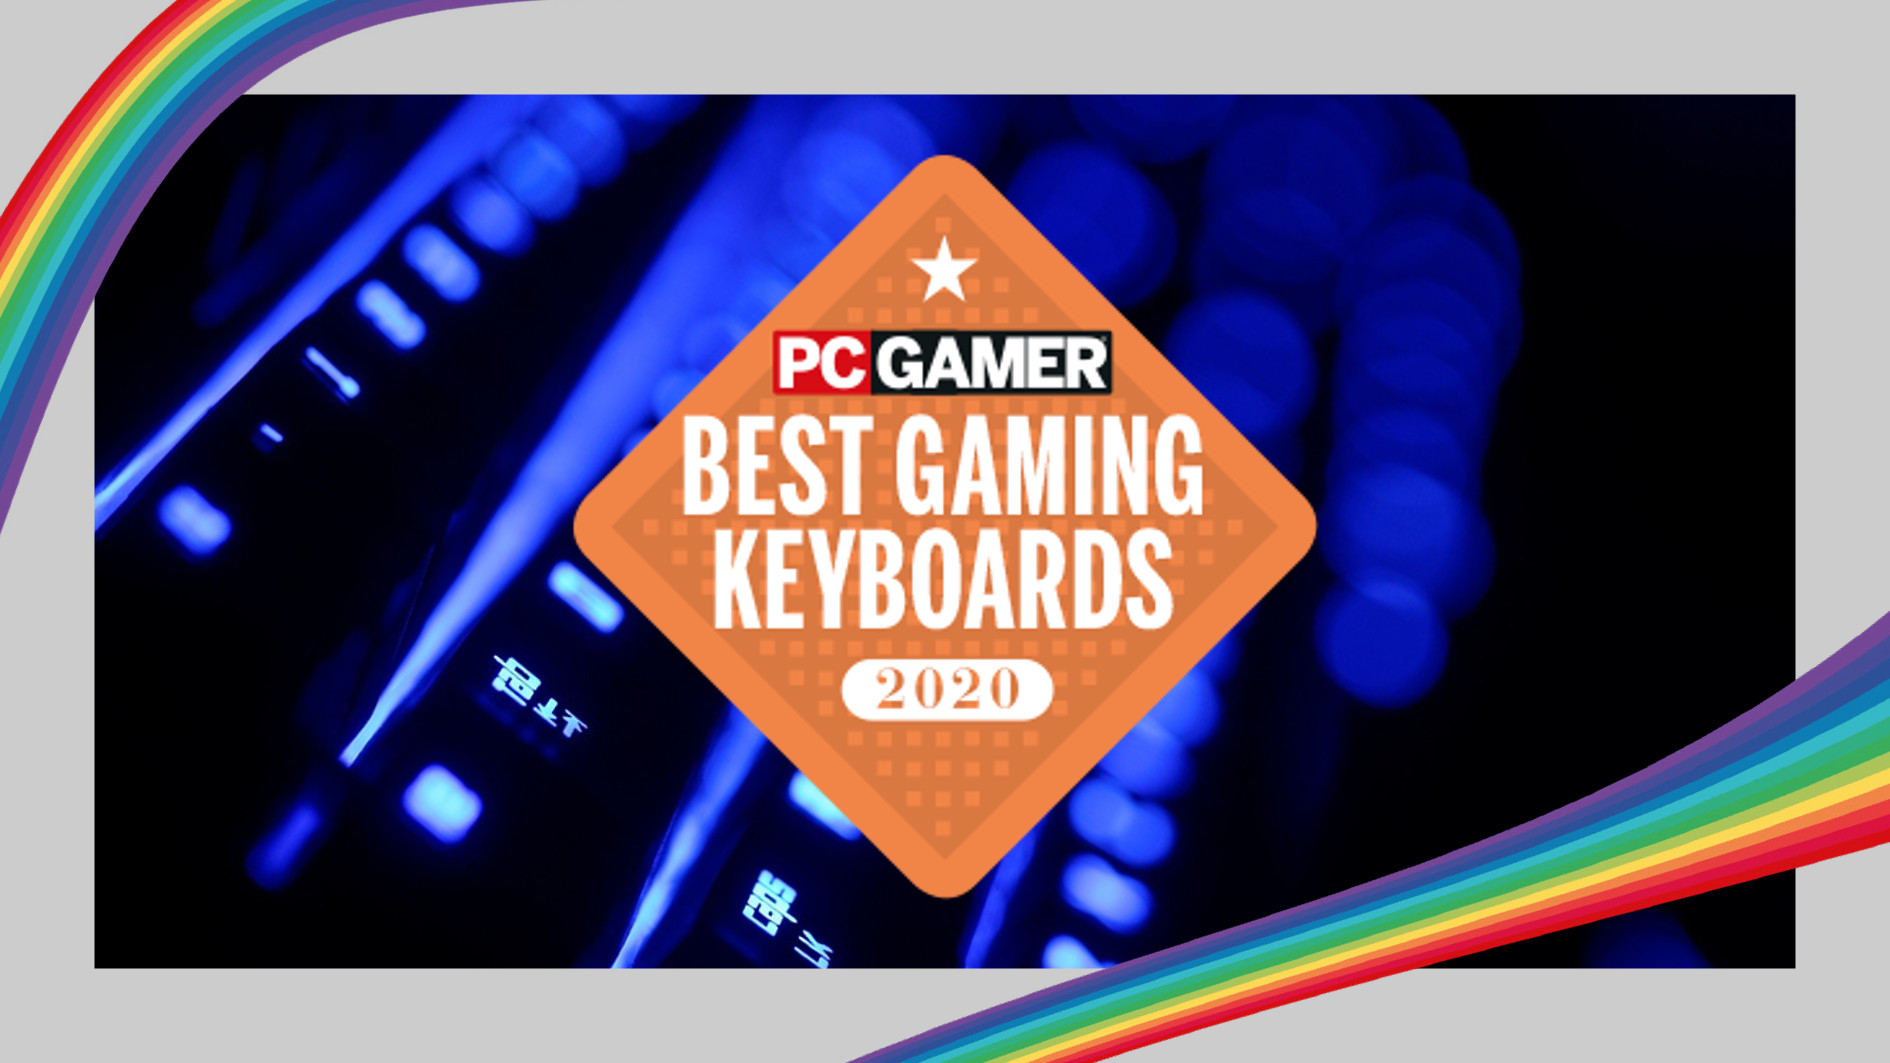 PC Gamer Hardware Awards: What is the best keyboard of 2020?